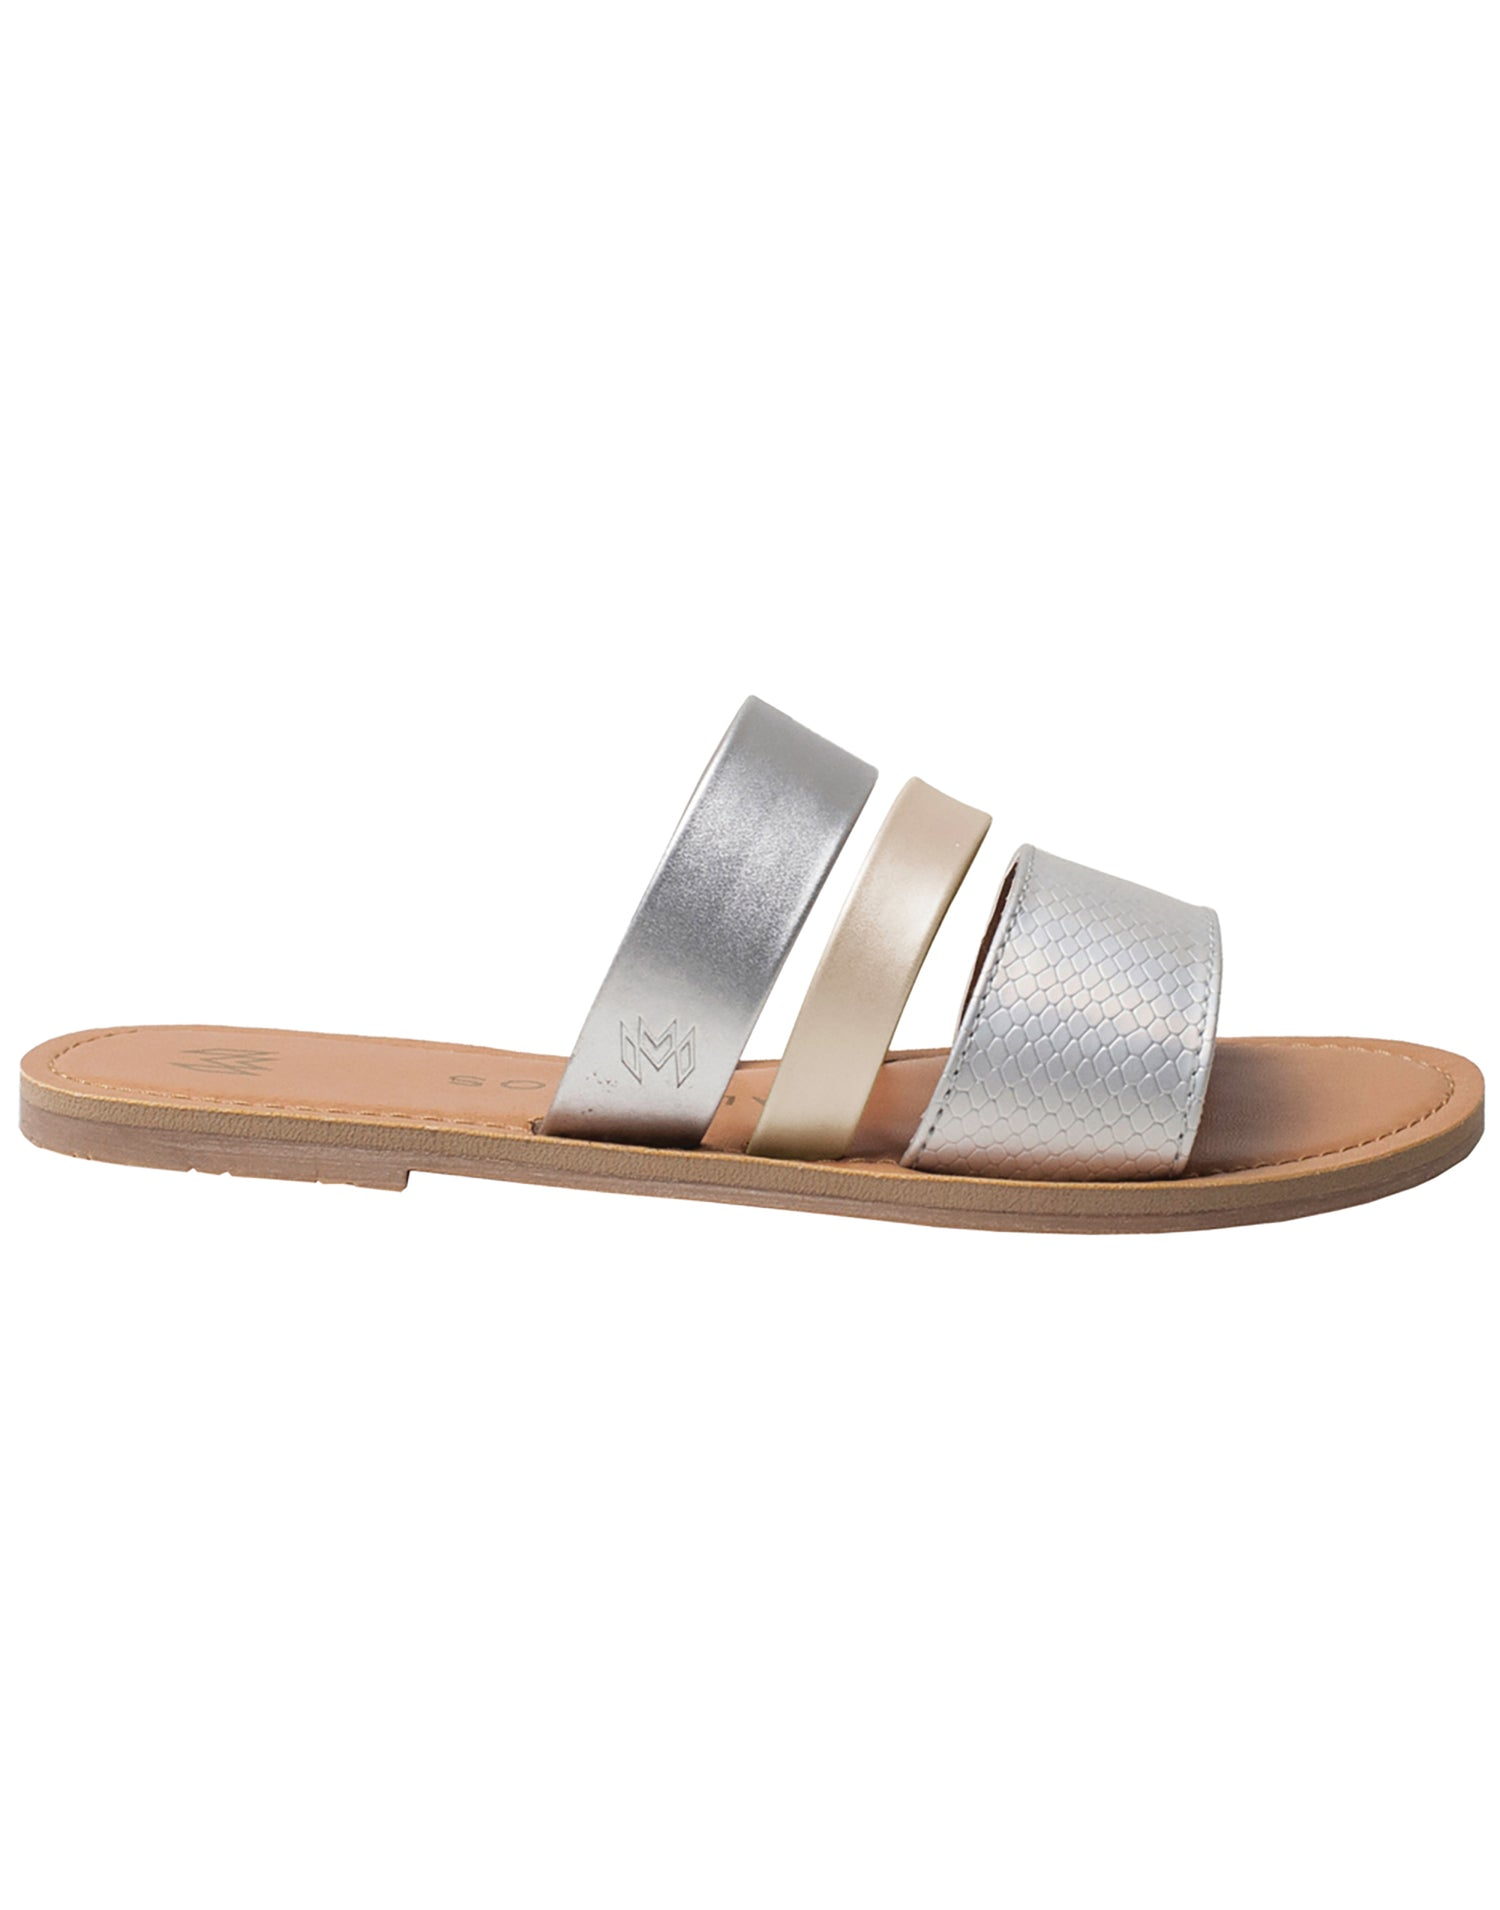 Malvados Icon Adele Sandals in Grey/Gold - side view